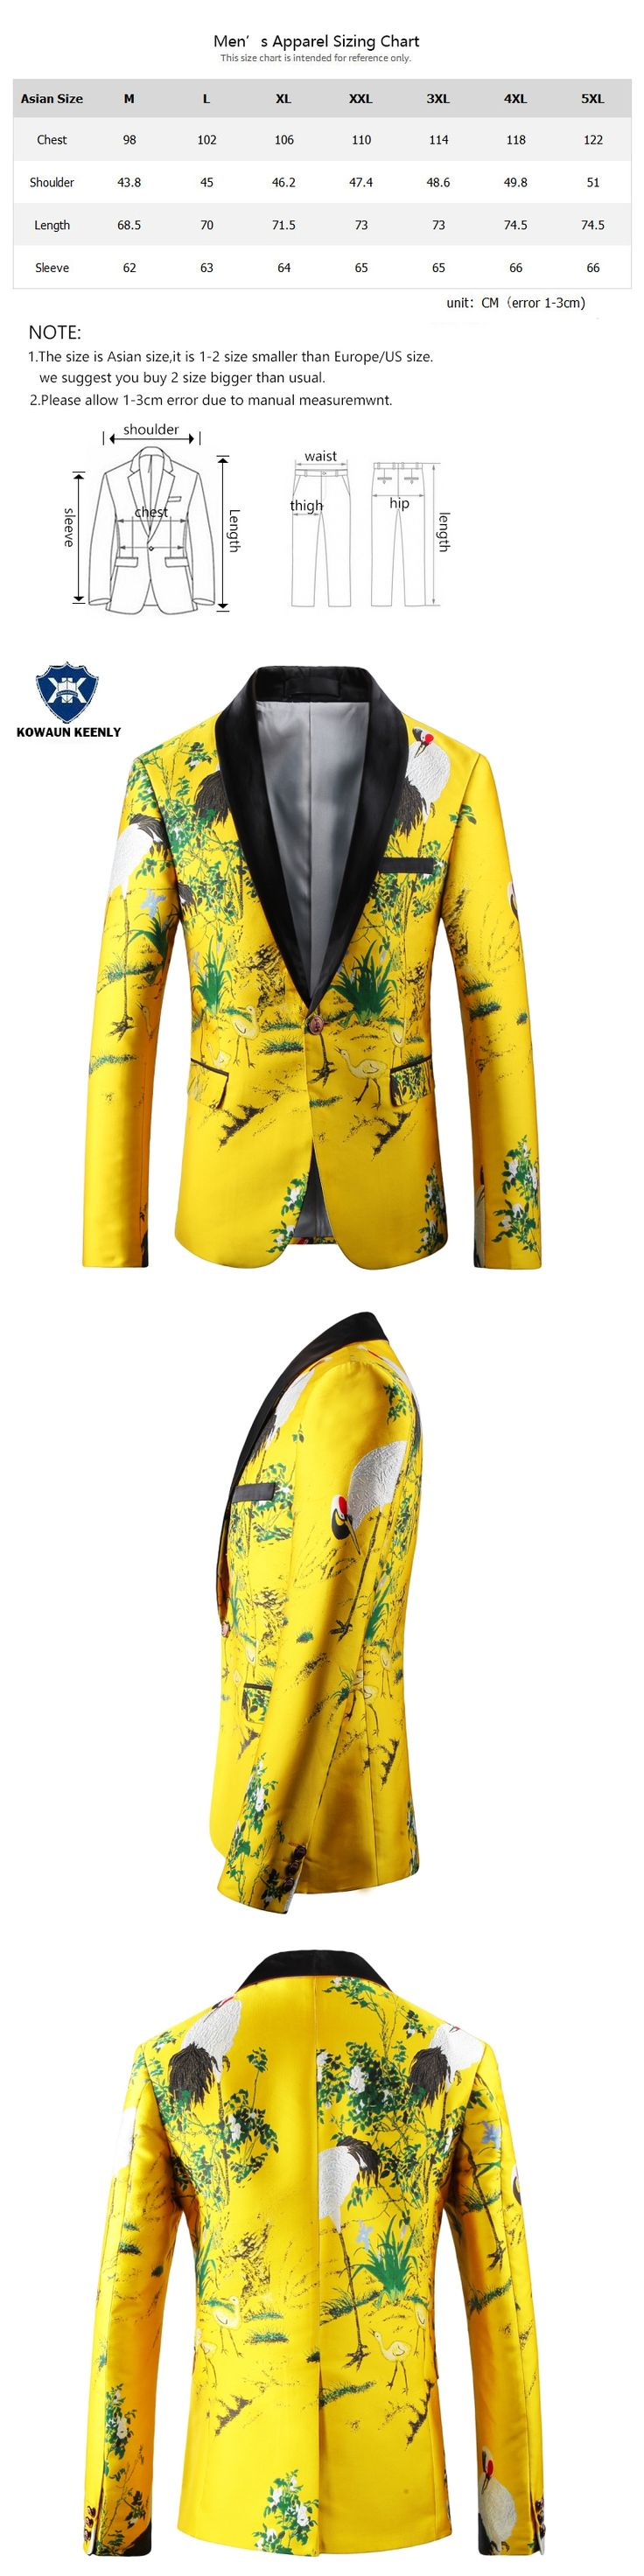 Men Yellow Printed Blazer Slim Fit Floral Embroidery Mens Stage Wear Casual Prom Blazer Jacket Nightclub Clothes for Men 4XL 5XL